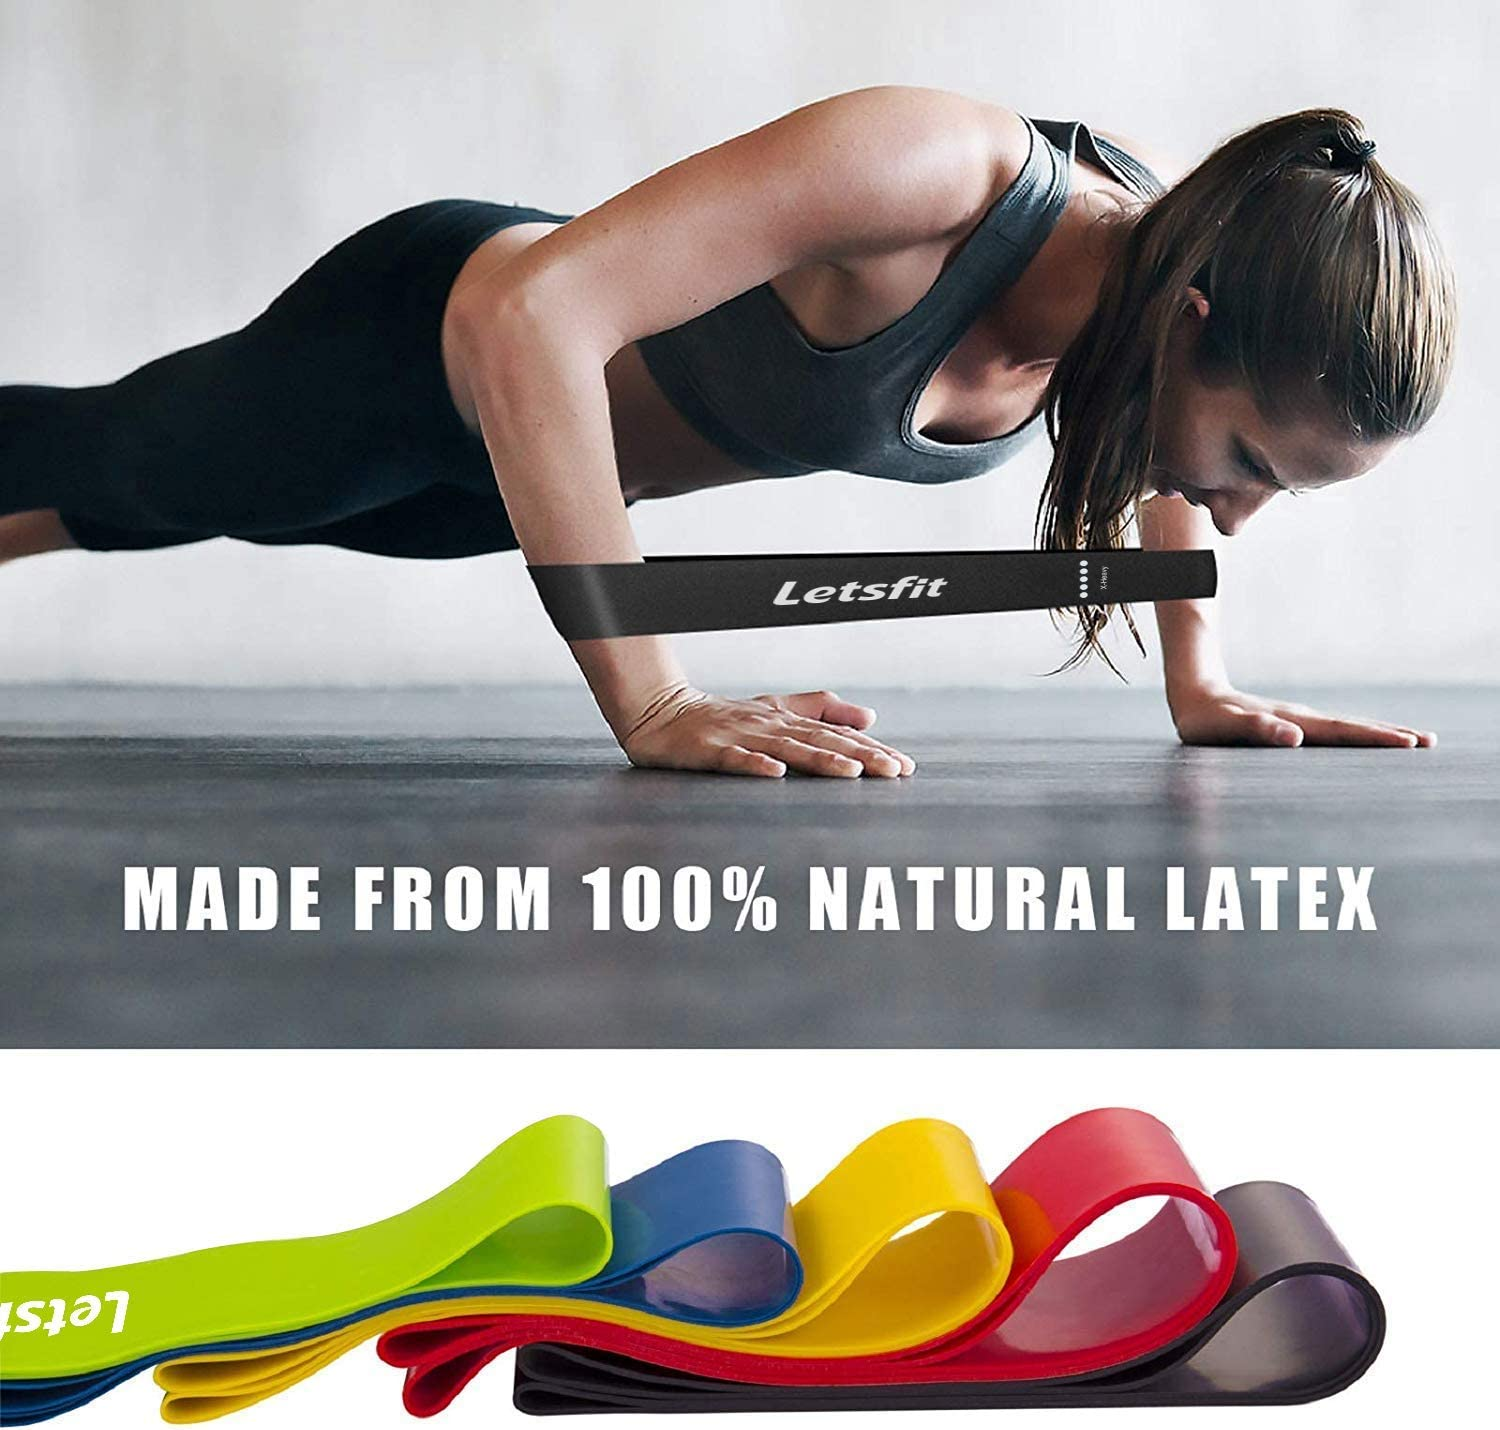 Letsfit Resistance Loop Bands, Resistance Exercise Bands for Home Fitness, Stretching, Strength Training, Physical Therapy, Natural Latex Workout Bands, Pilates Flexbands : Sports & Outdoors